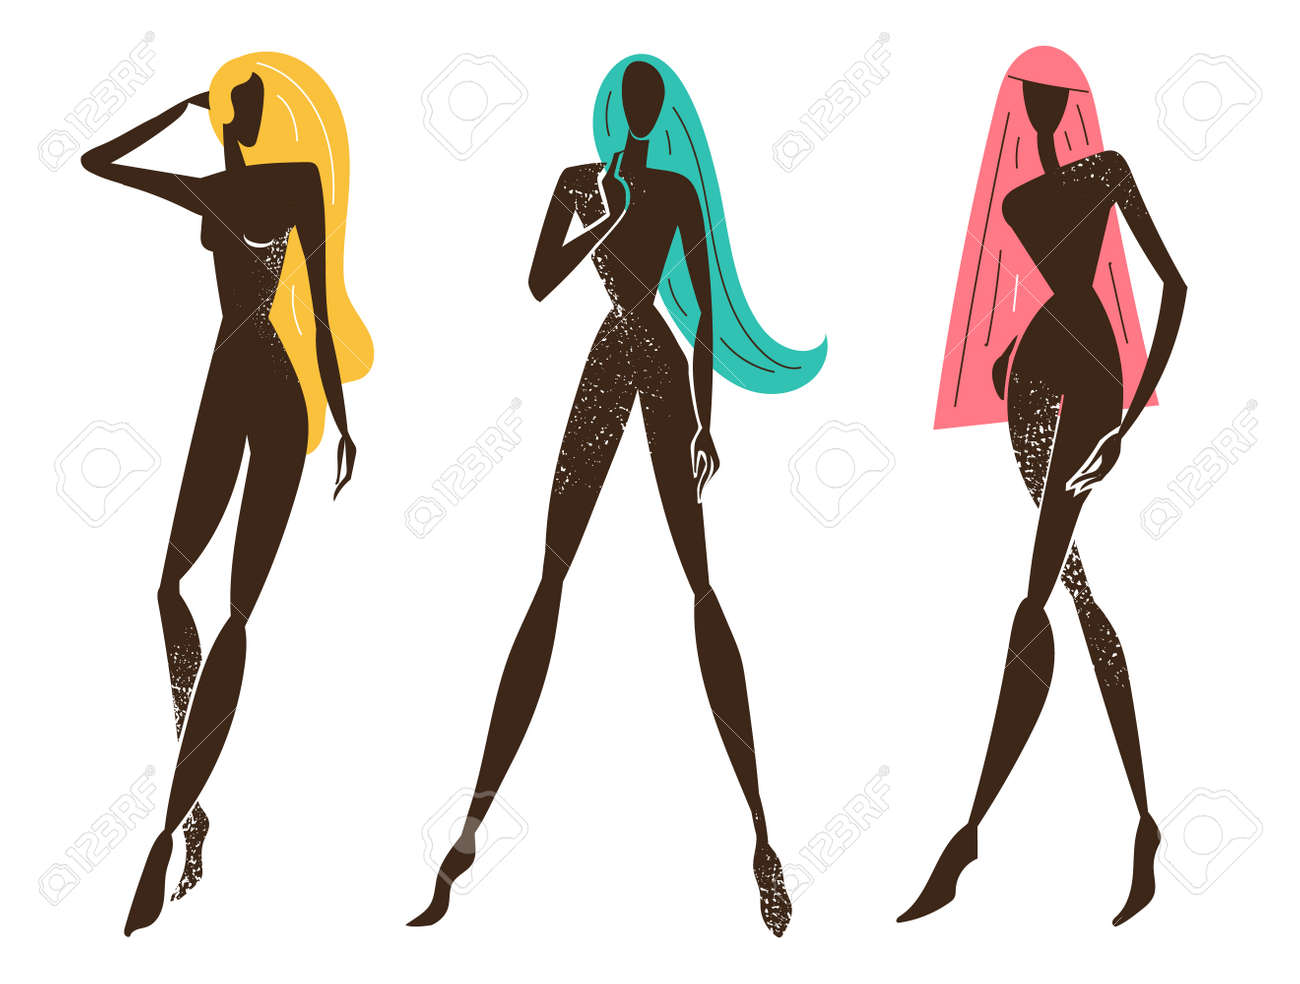 Vector set of stylized women standing, long hair, black textured silhouettes. Feminine concept, art illustration. Use as poster, print for t-shirt, design element for beauty products - 171129387